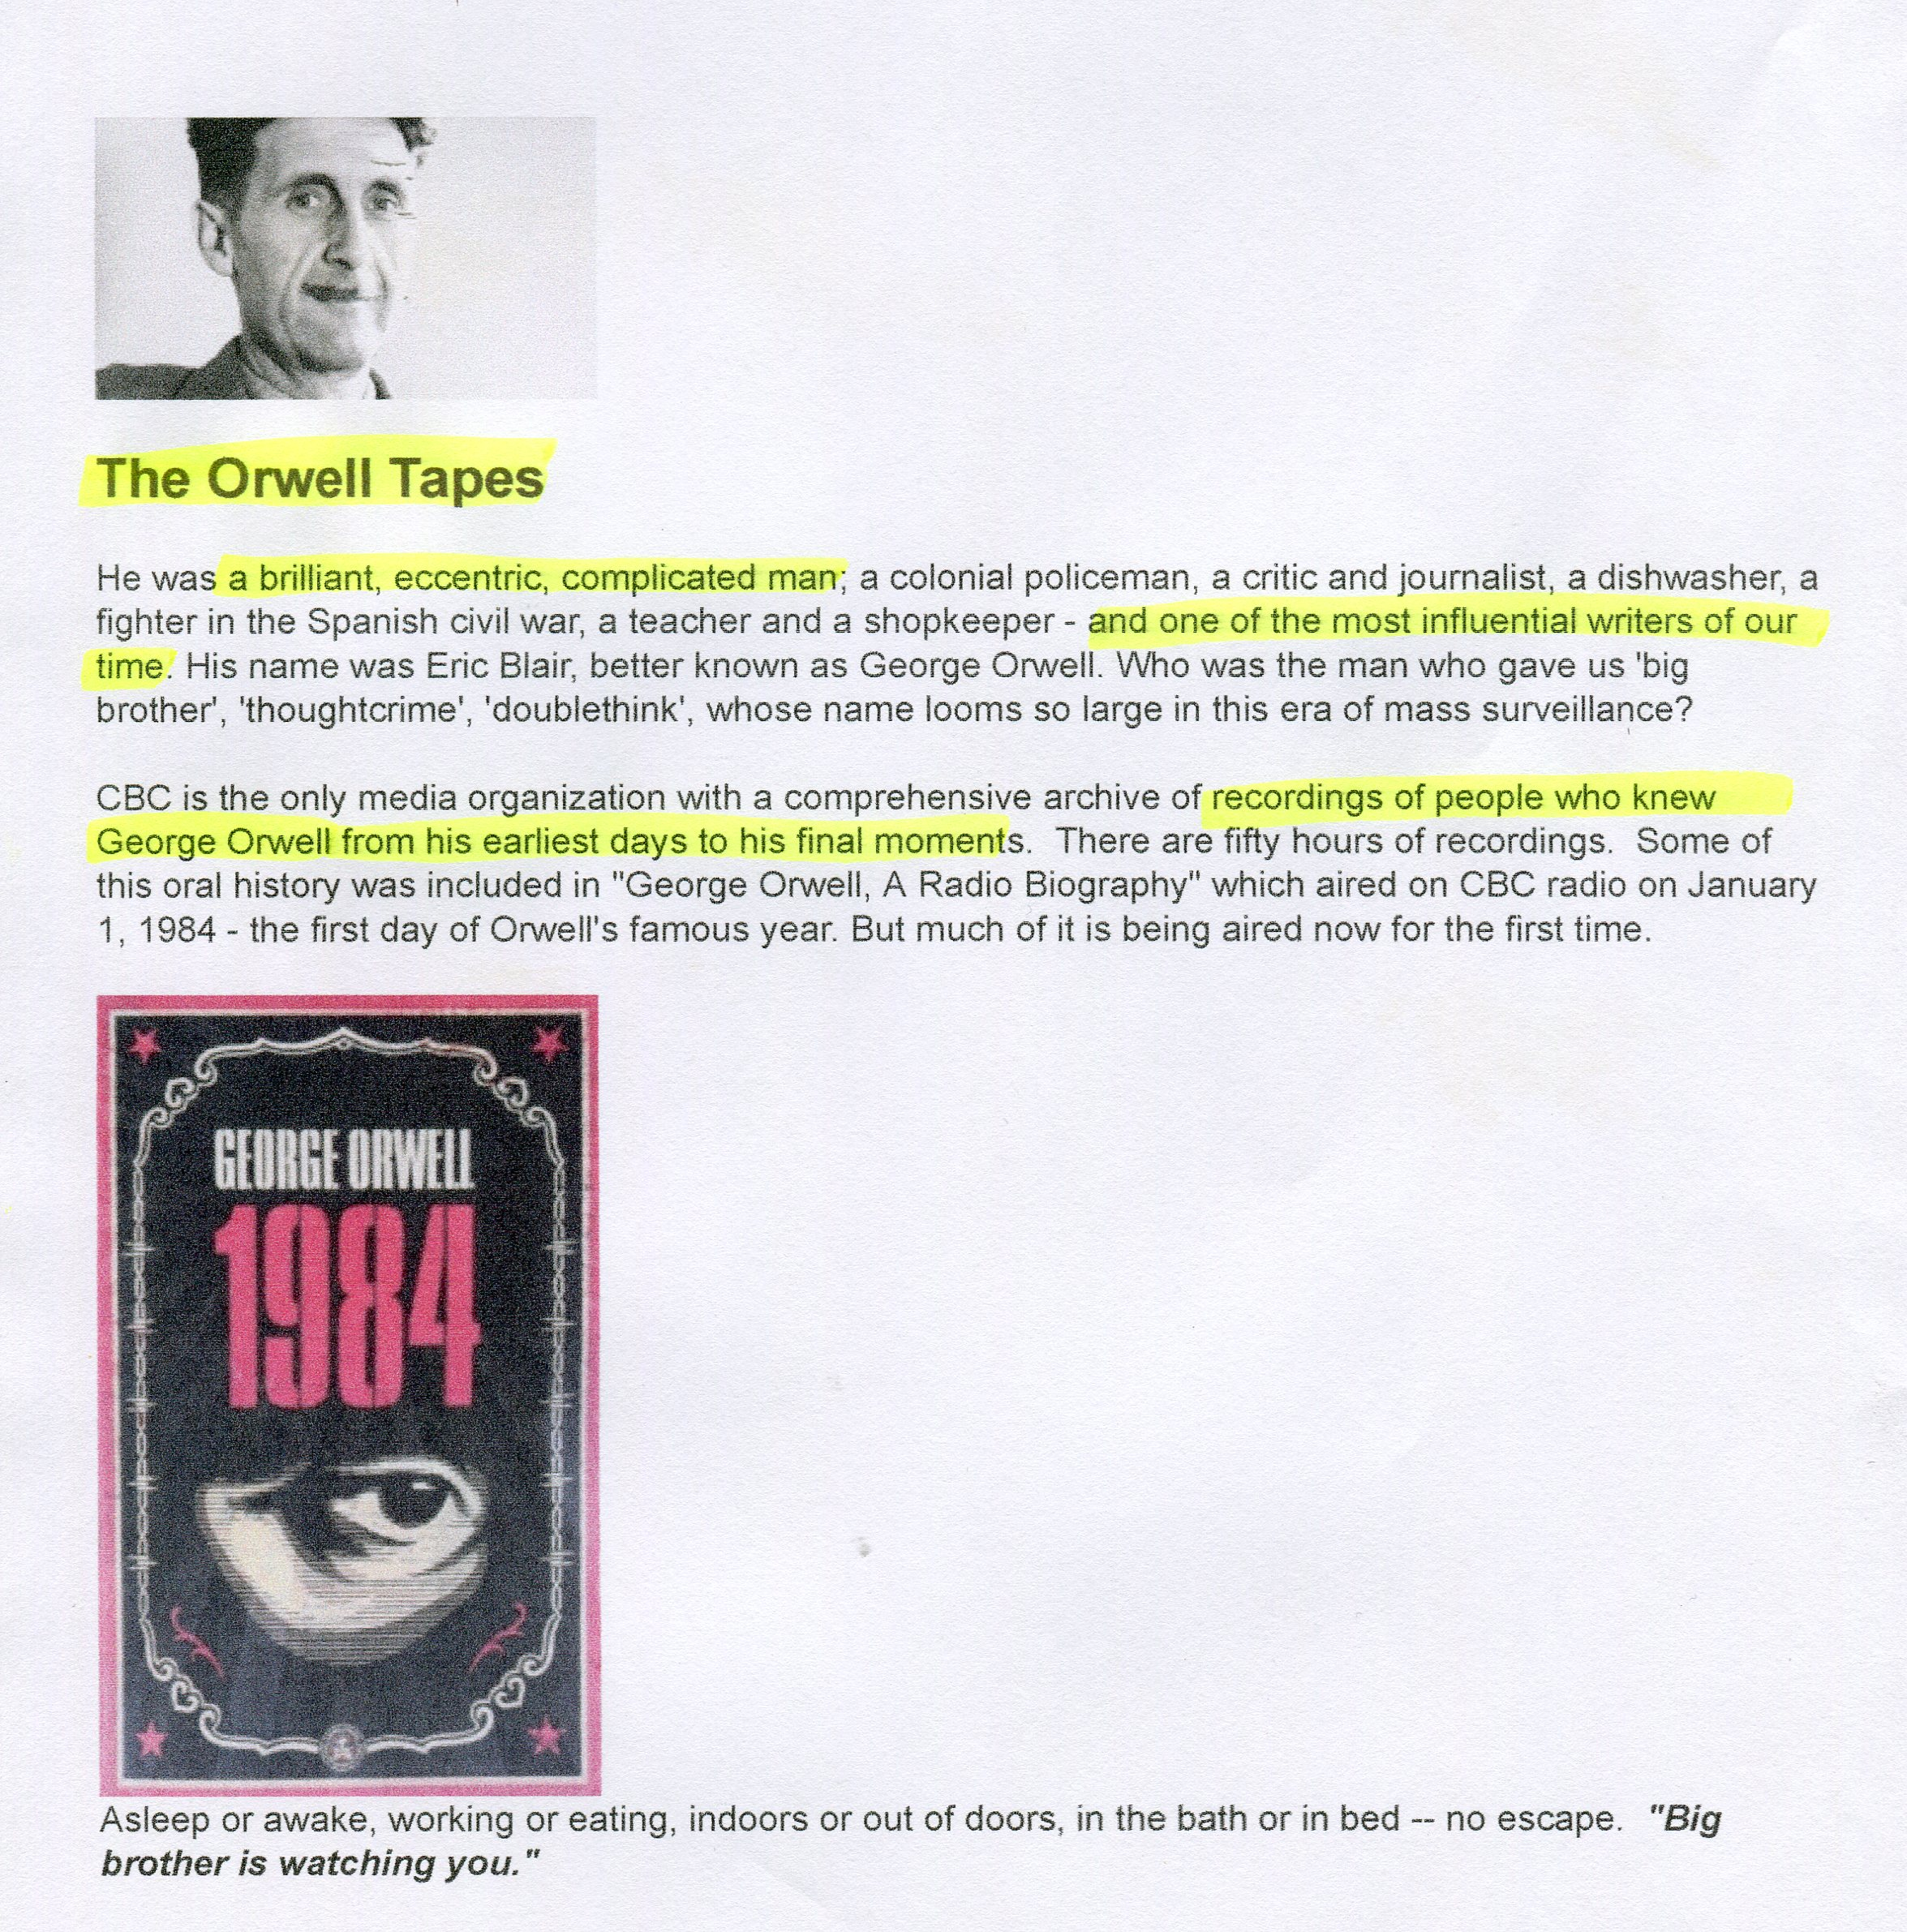 analysis essay george orwell criticizing euphemisms used u In paragraph 4, orwell uses a simile describing phrases tacked together like the sections of a orwell compares the obscuring effect of using a euphemism to the falling of snow, which blocks unlike the writers he criticizes, orwell uses vivid metaphors that clearly convey their meaning to the.